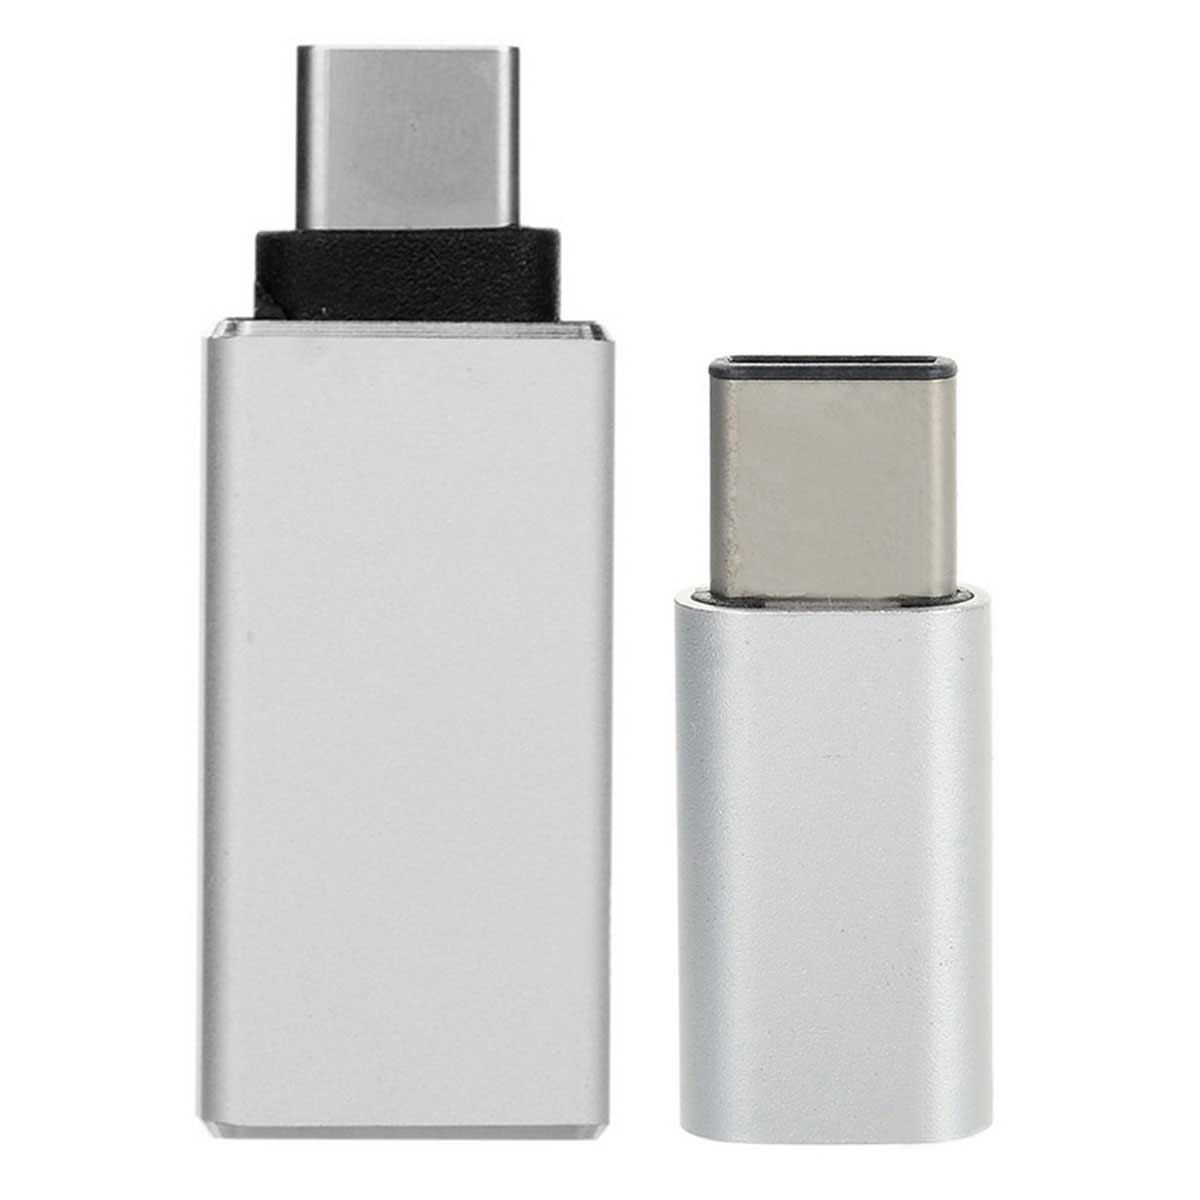 USB 3.1 Type-C to Micro USB + 3.0 OTG Adapter - Silver